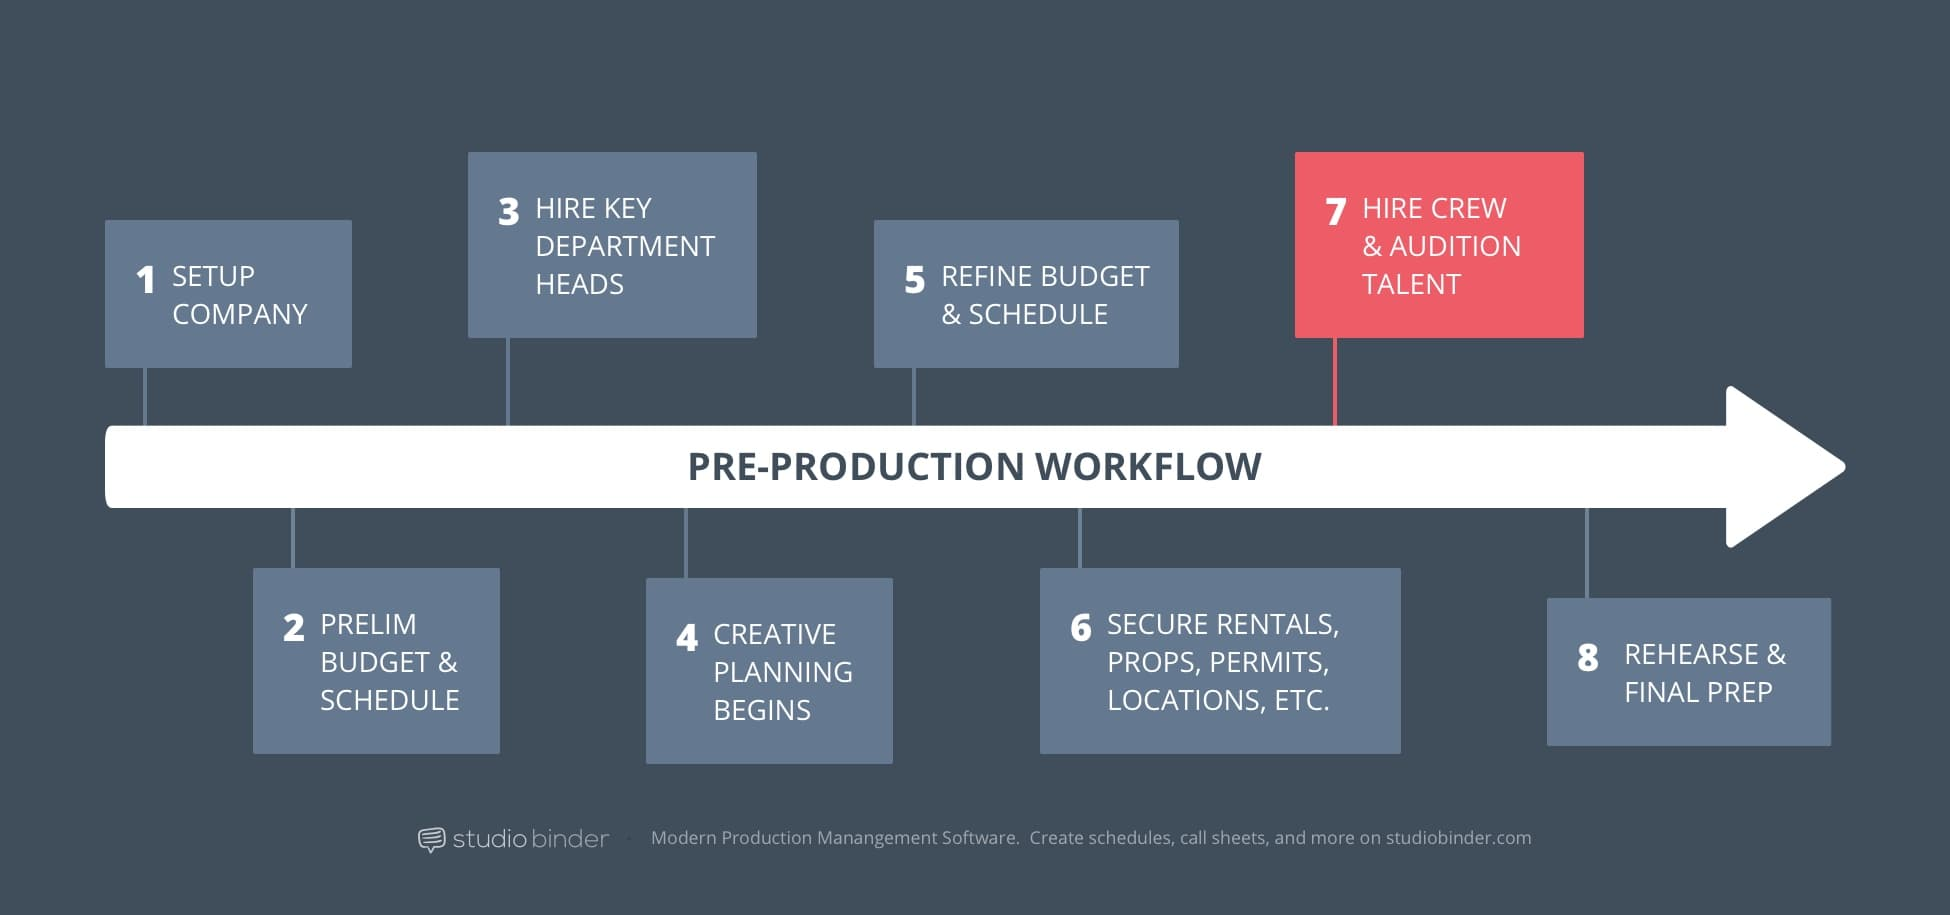 7 – StudioBinder Pre-Production Workflow – Hire Crew and Audience Talent